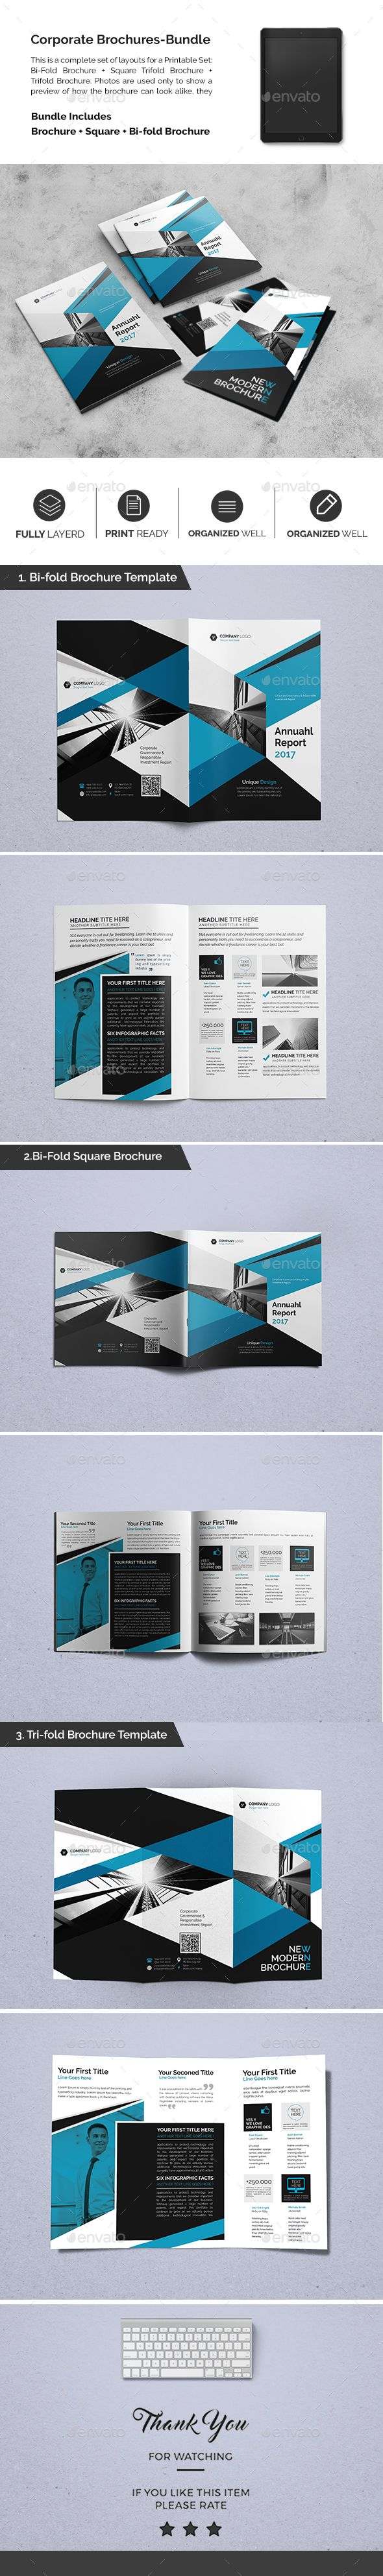 Best Duotone Brochure Images On   Arquitetura